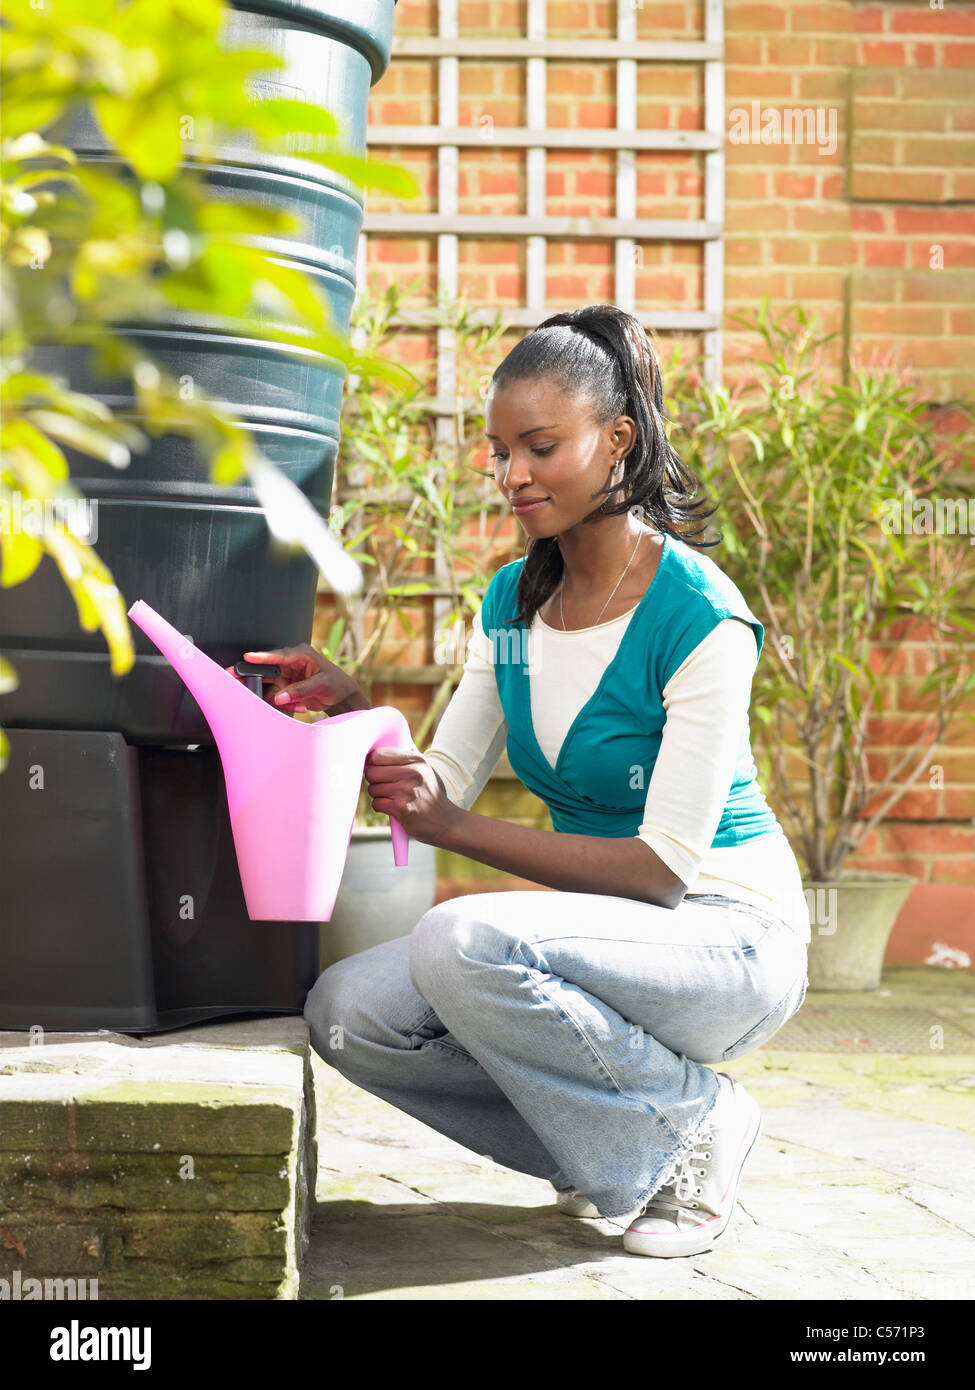 Woman filling jug with recycled water - Stock Image